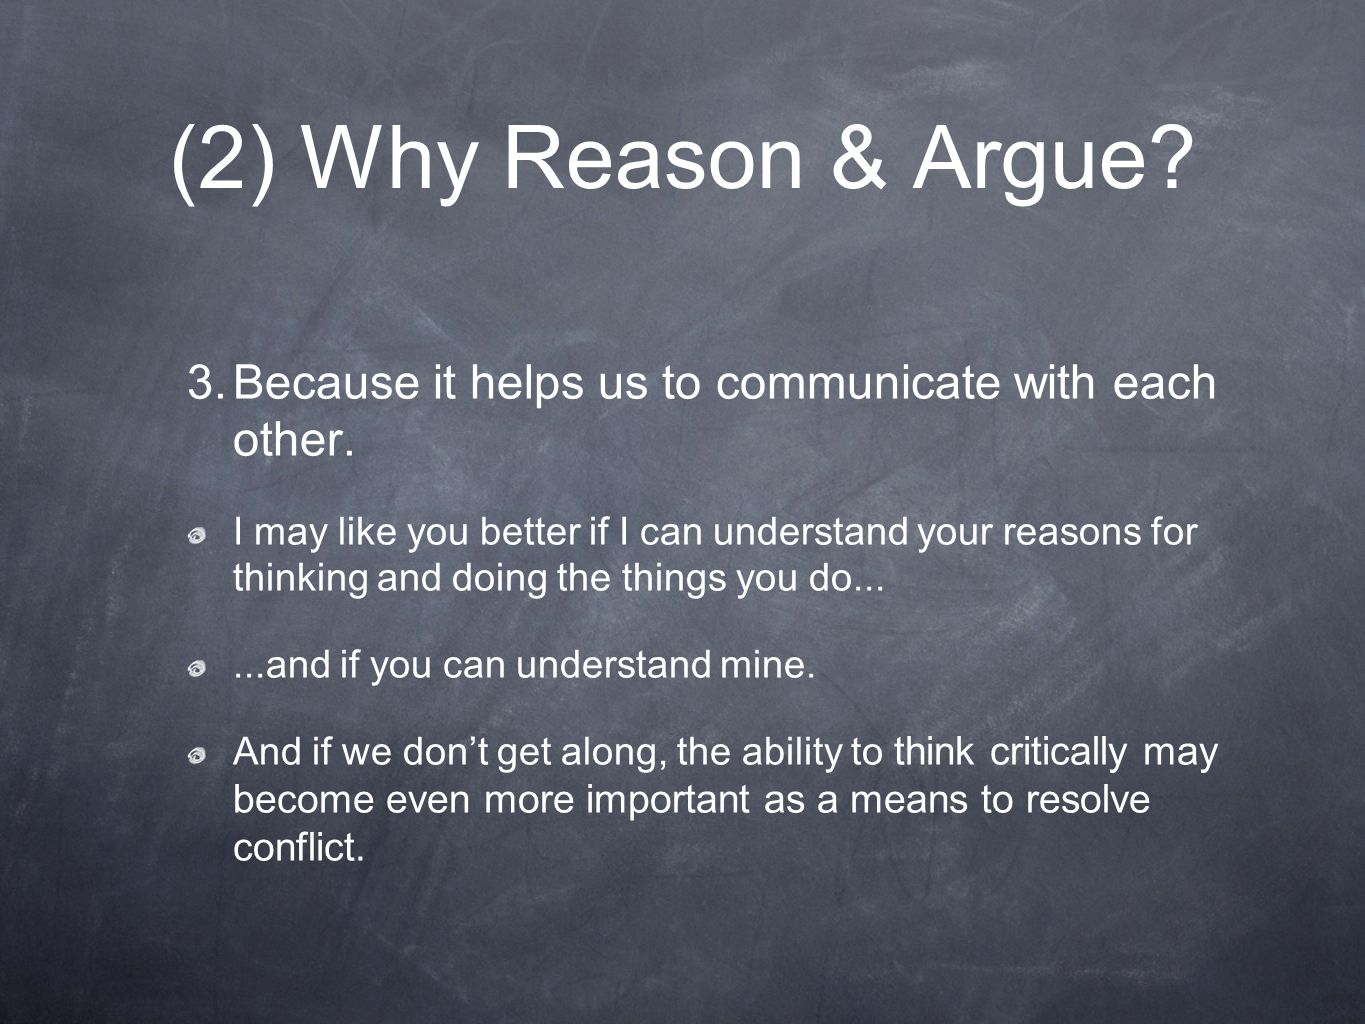 (2) Why Reason & Argue Because it helps us to communicate with each other.